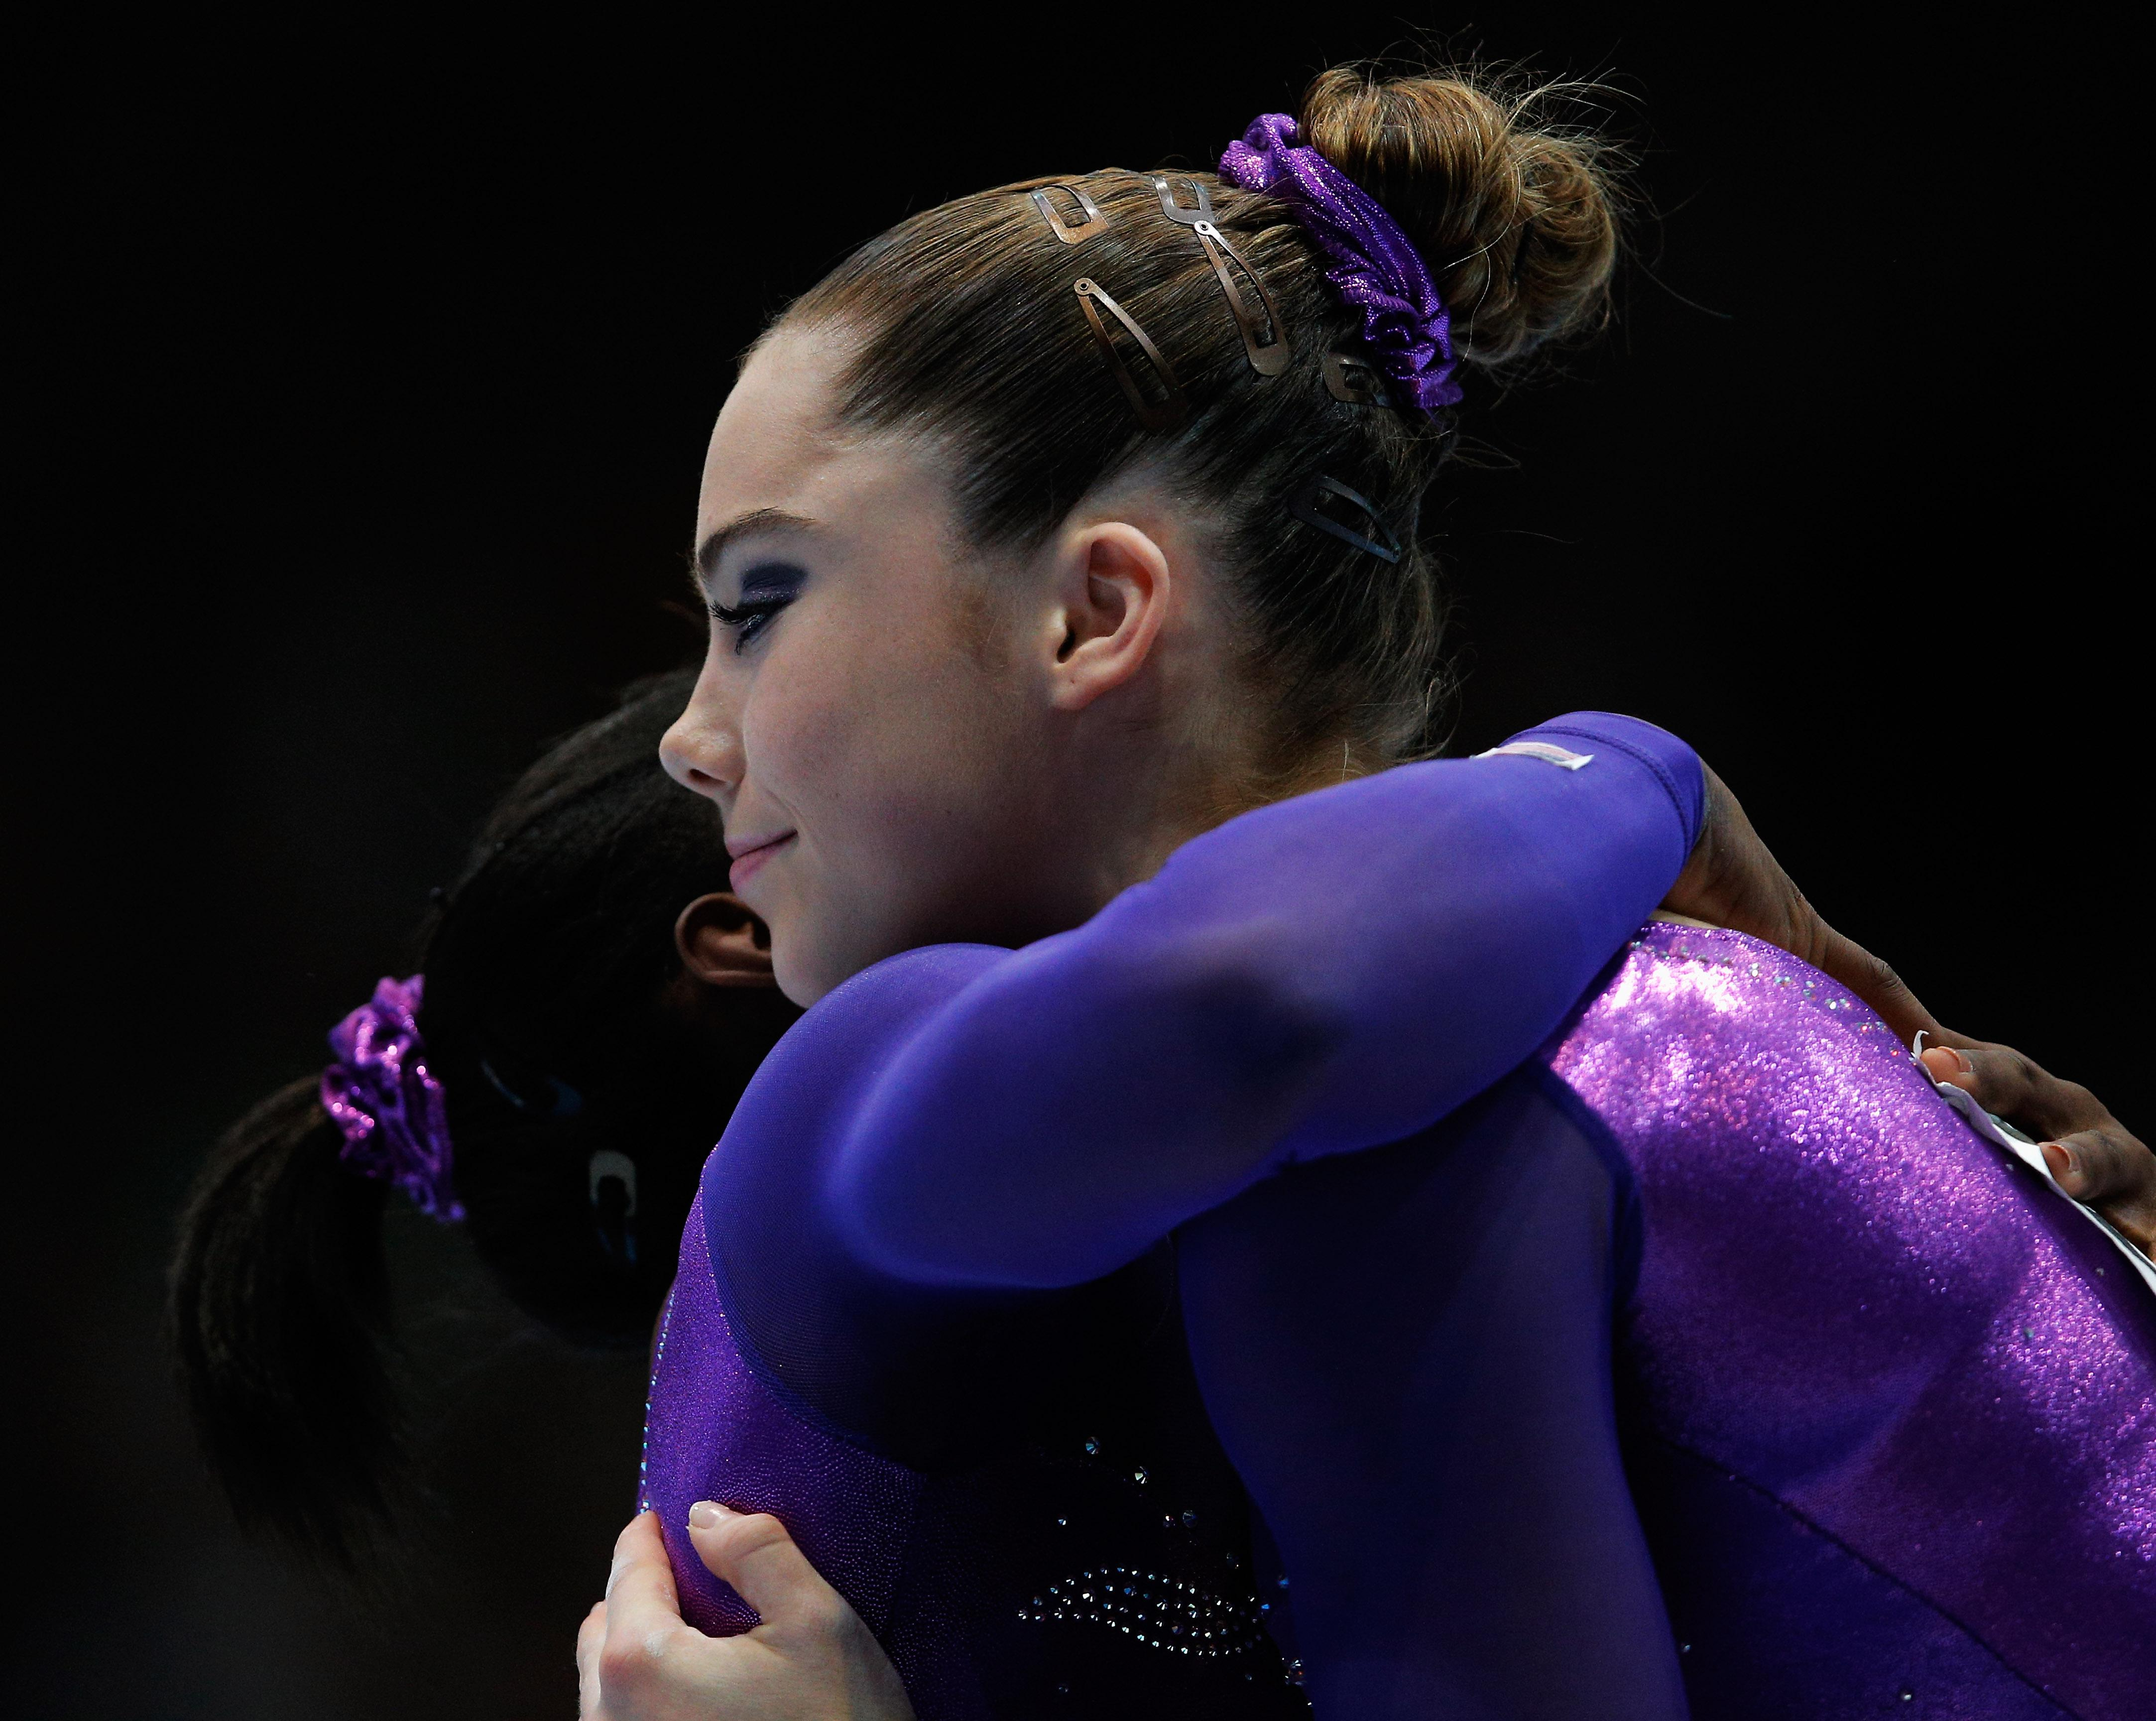 Simone Biles and McKayla Maroney both of USA embrace after the Vault Final on Day Six of the Artistic Gymnastics World Championships Belgium 2013 held at the Antwerp Sports Palace on October 5, 2013 in Antwerpen, Belgium.